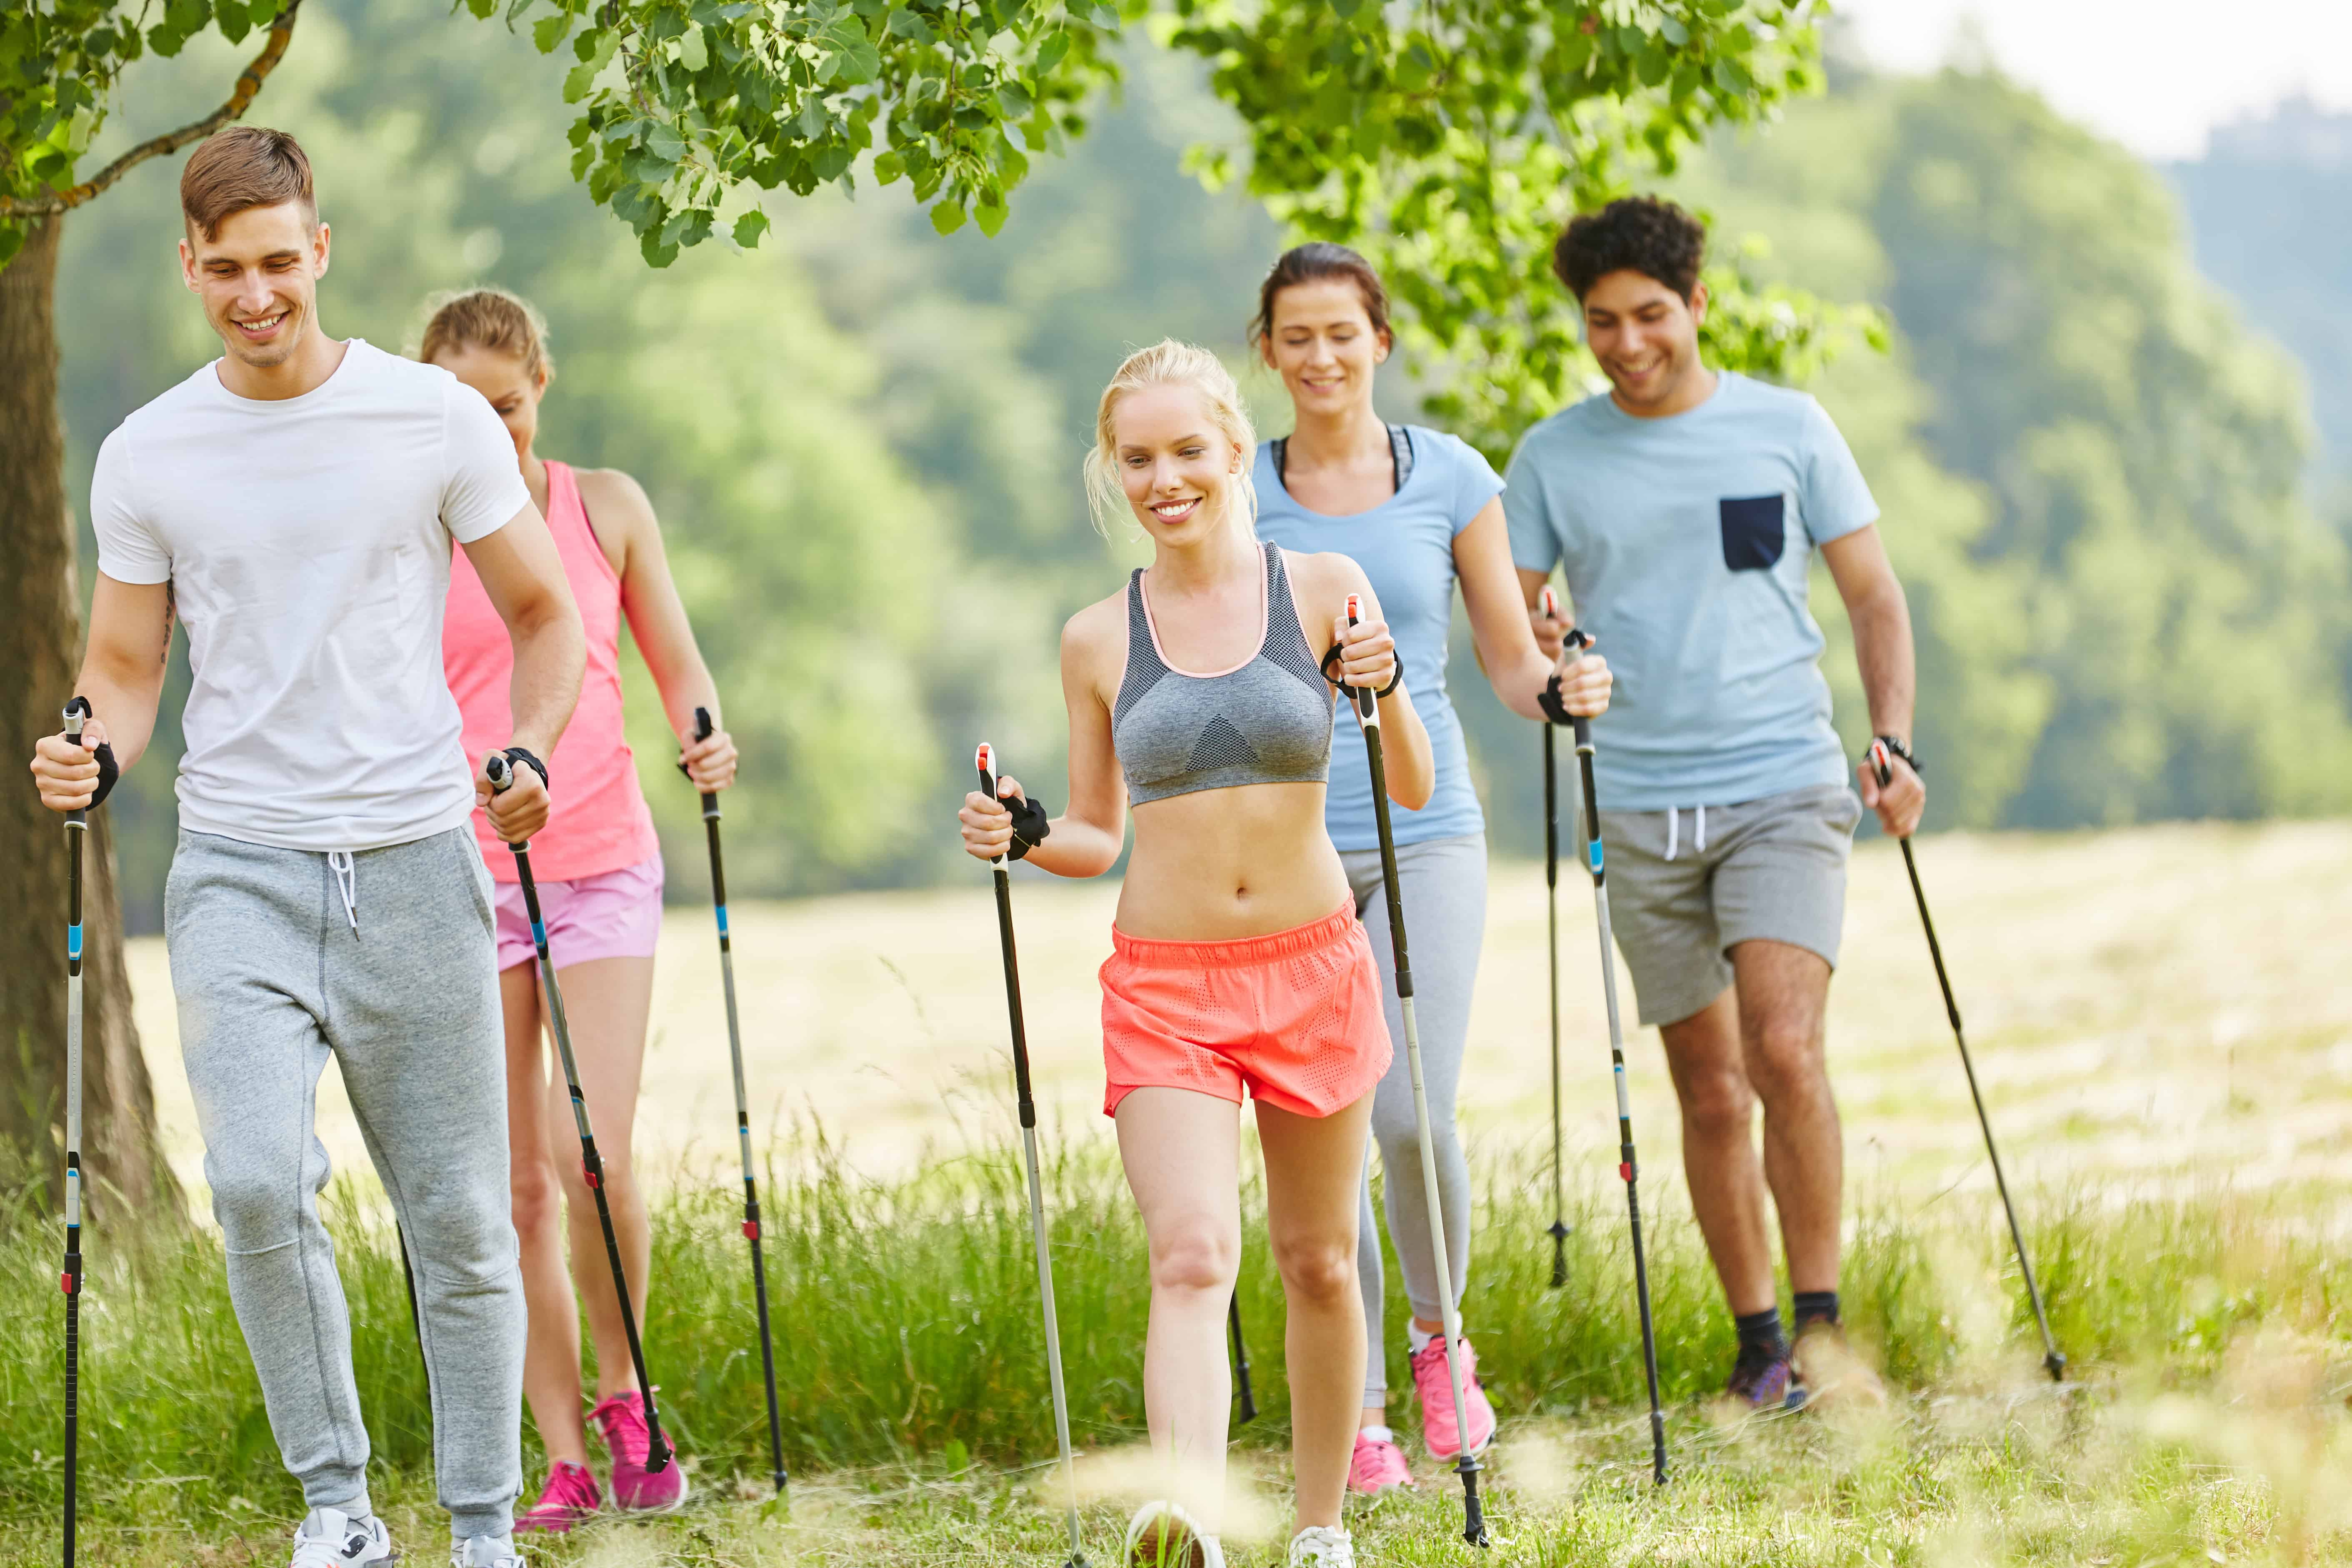 Exercises to get you prepared for your hiking trip